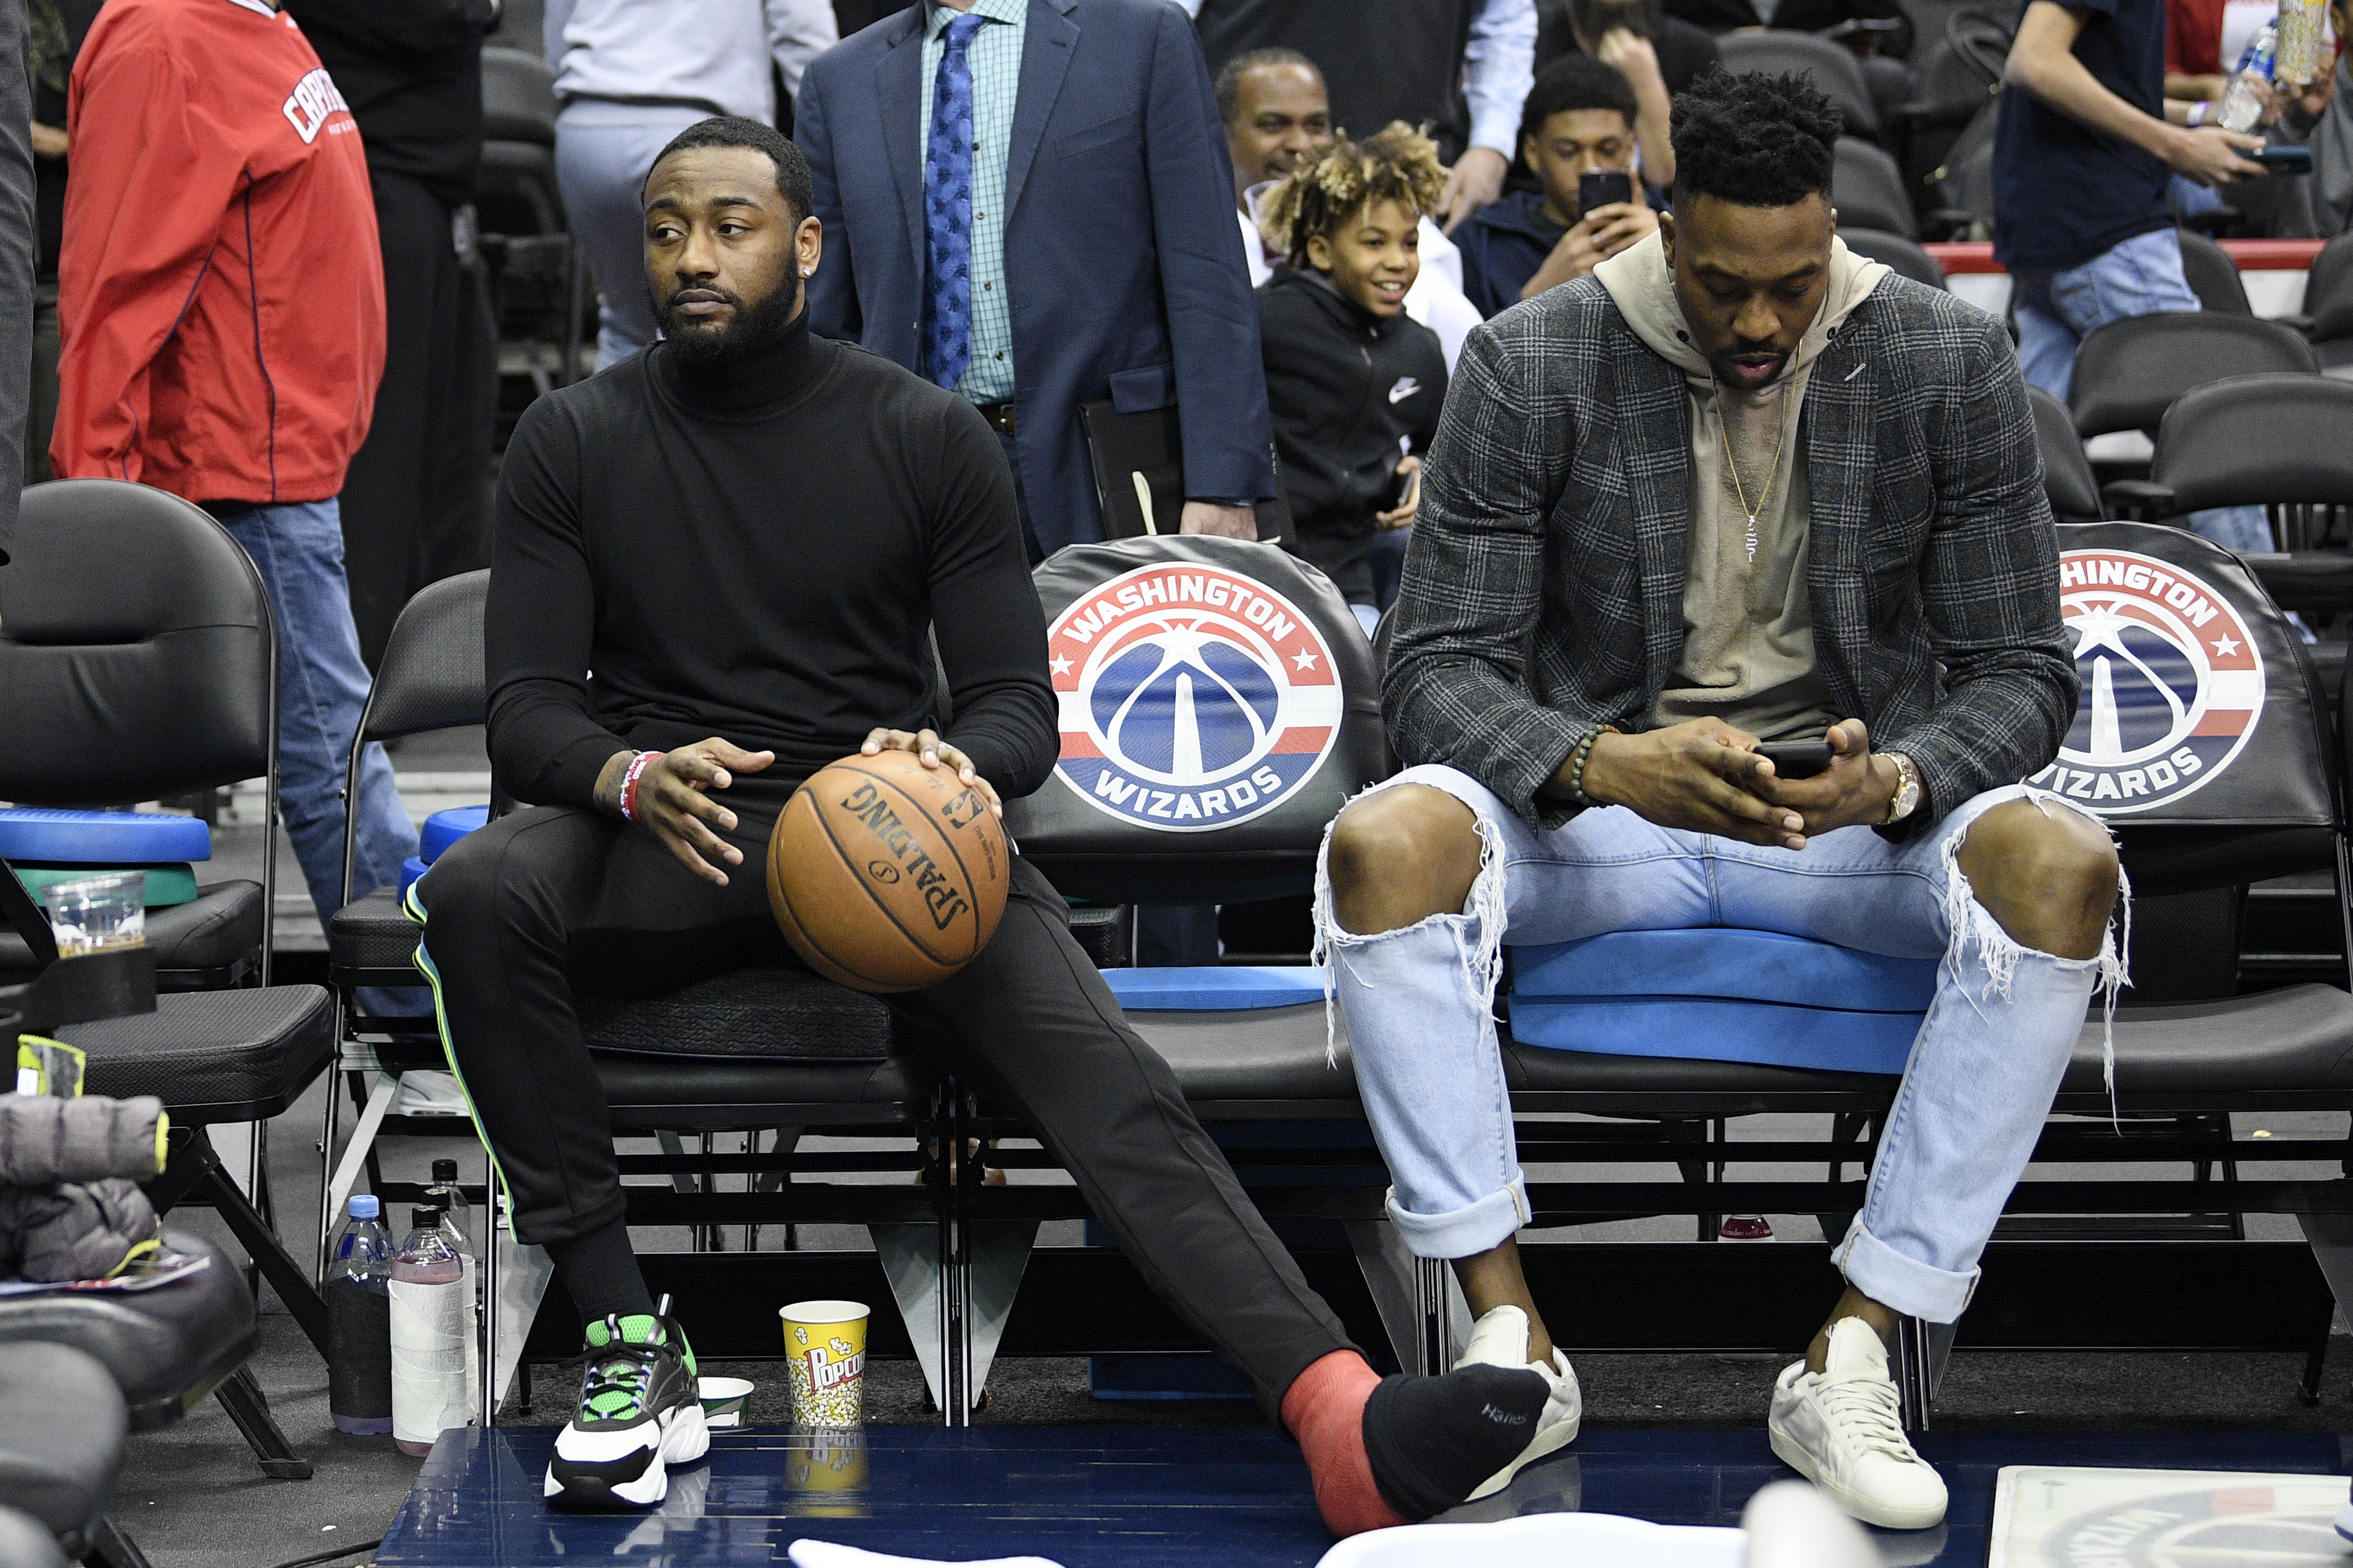 John Wall's injury, devastating as it is, could help the